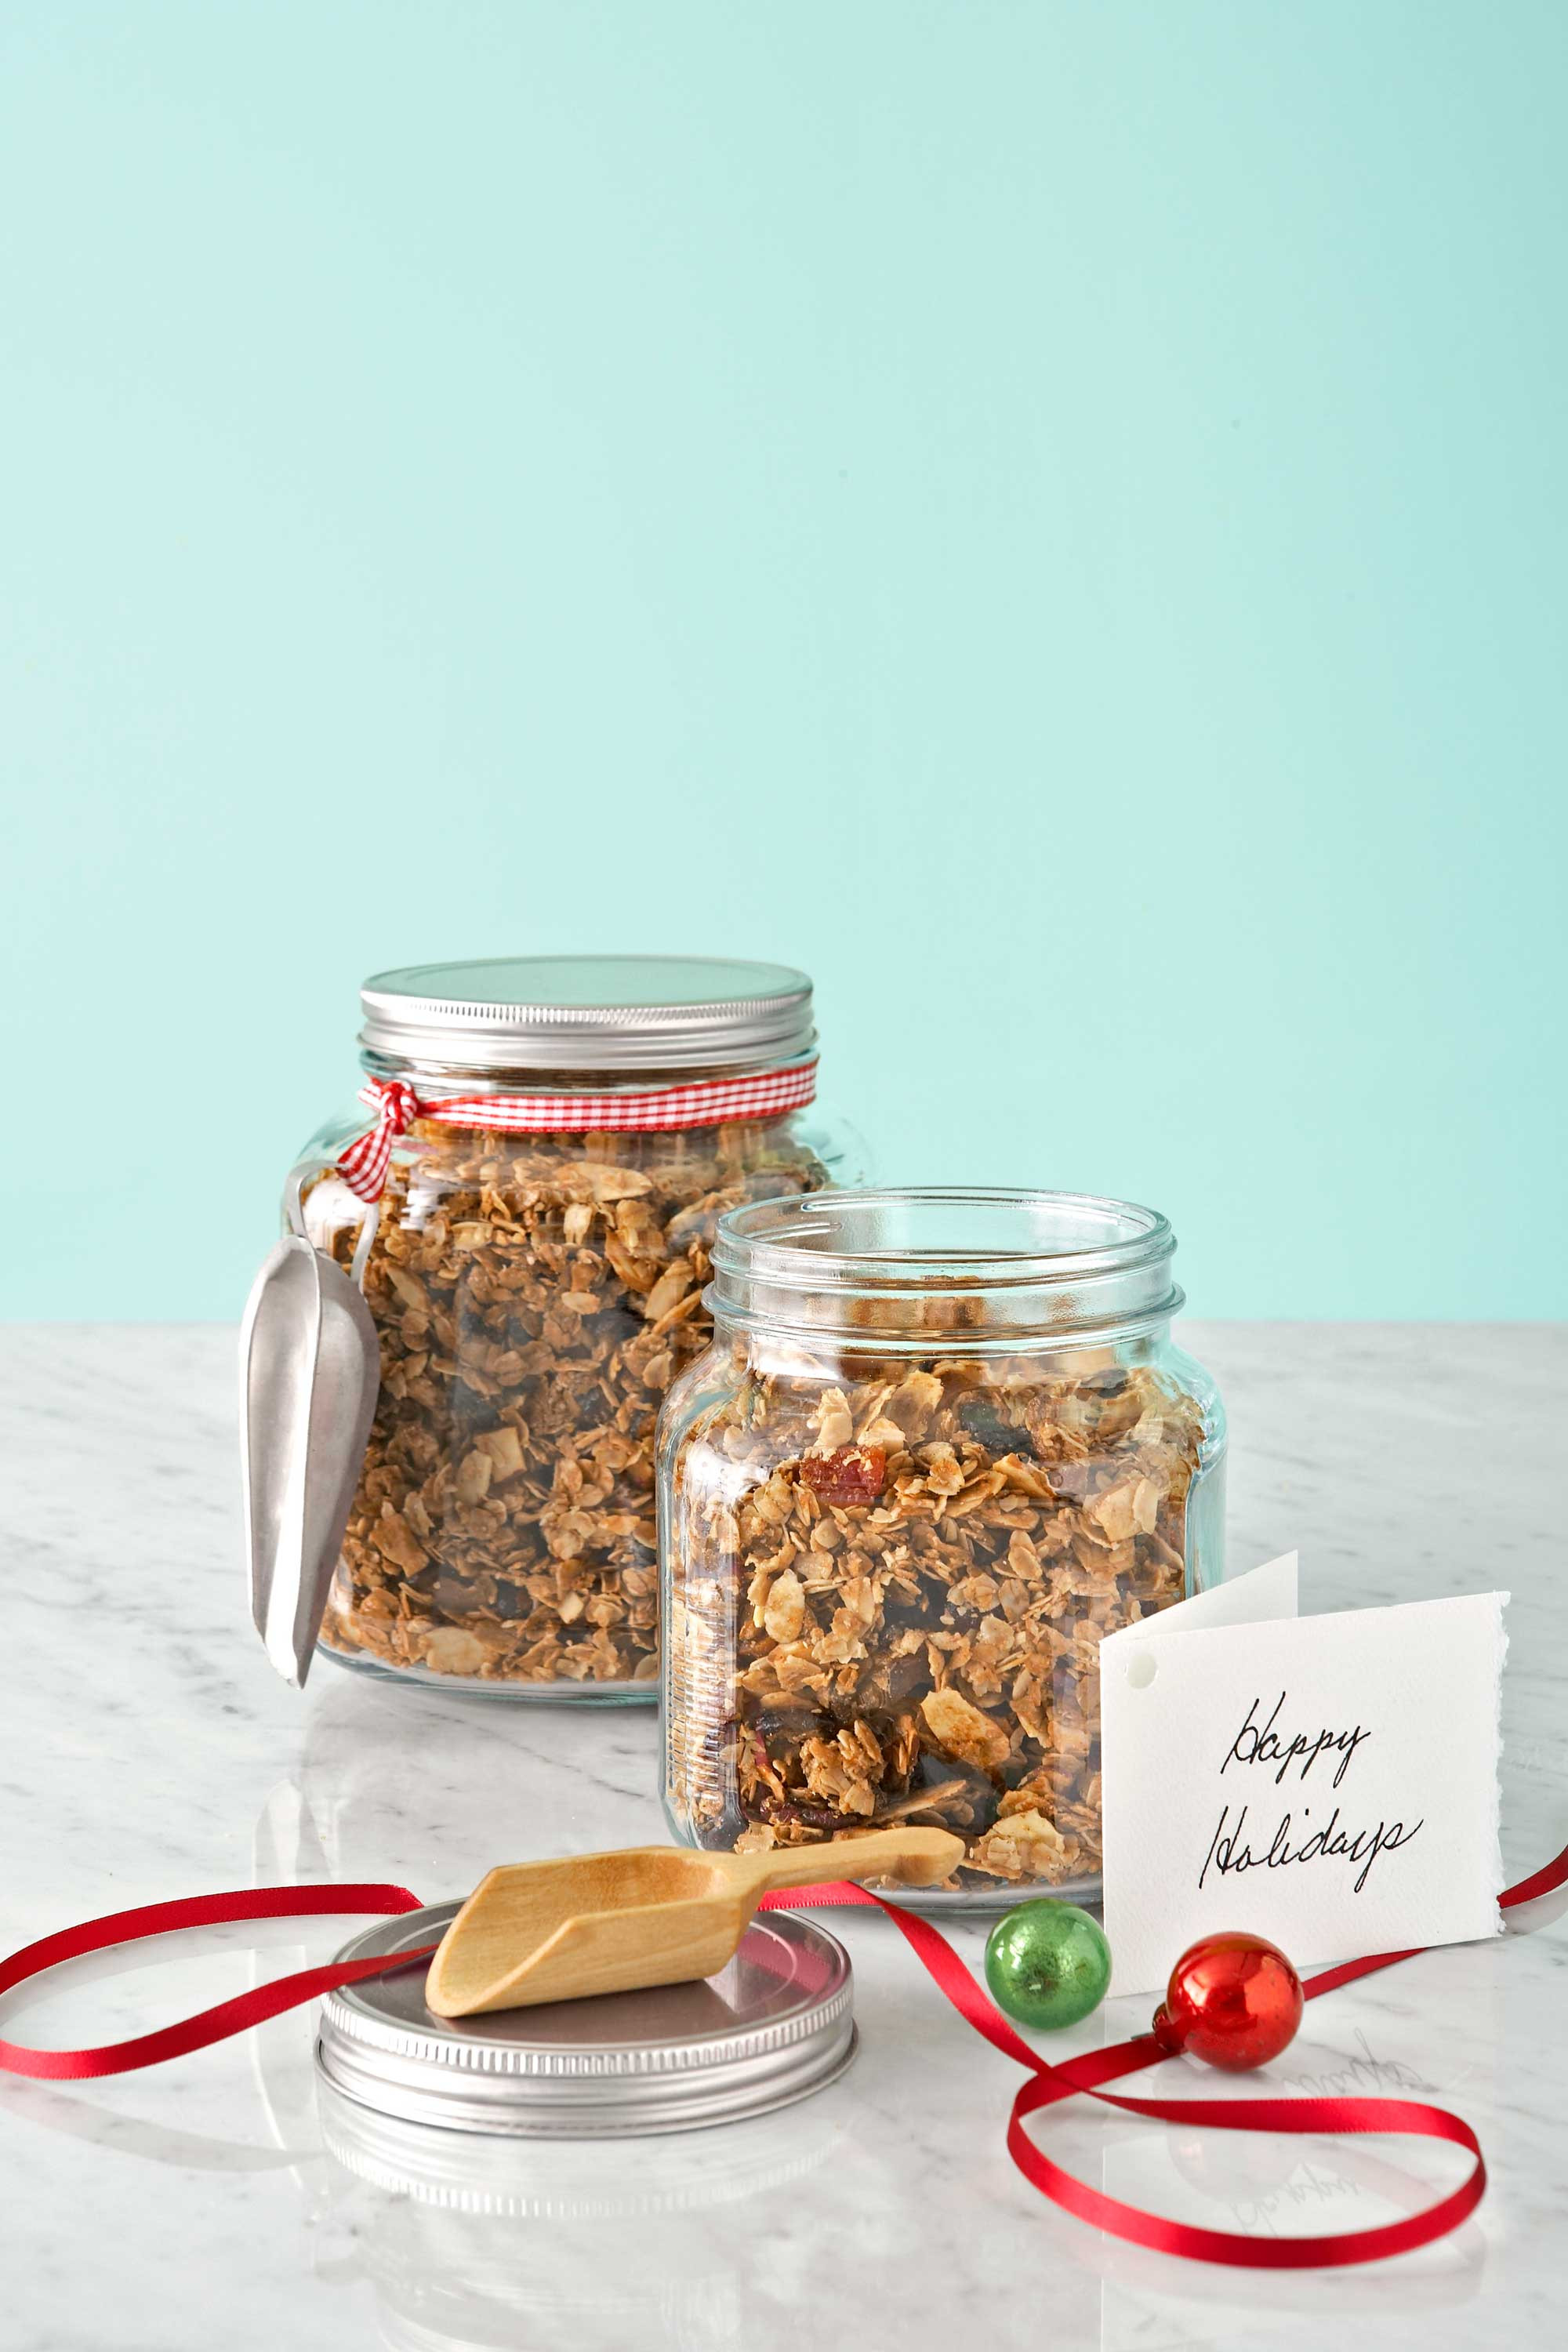 Best ideas about Holiday Food Gift Ideas . Save or Pin 36 Homemade Christmas Food Gifts Edible Holiday Gift Ideas Now.